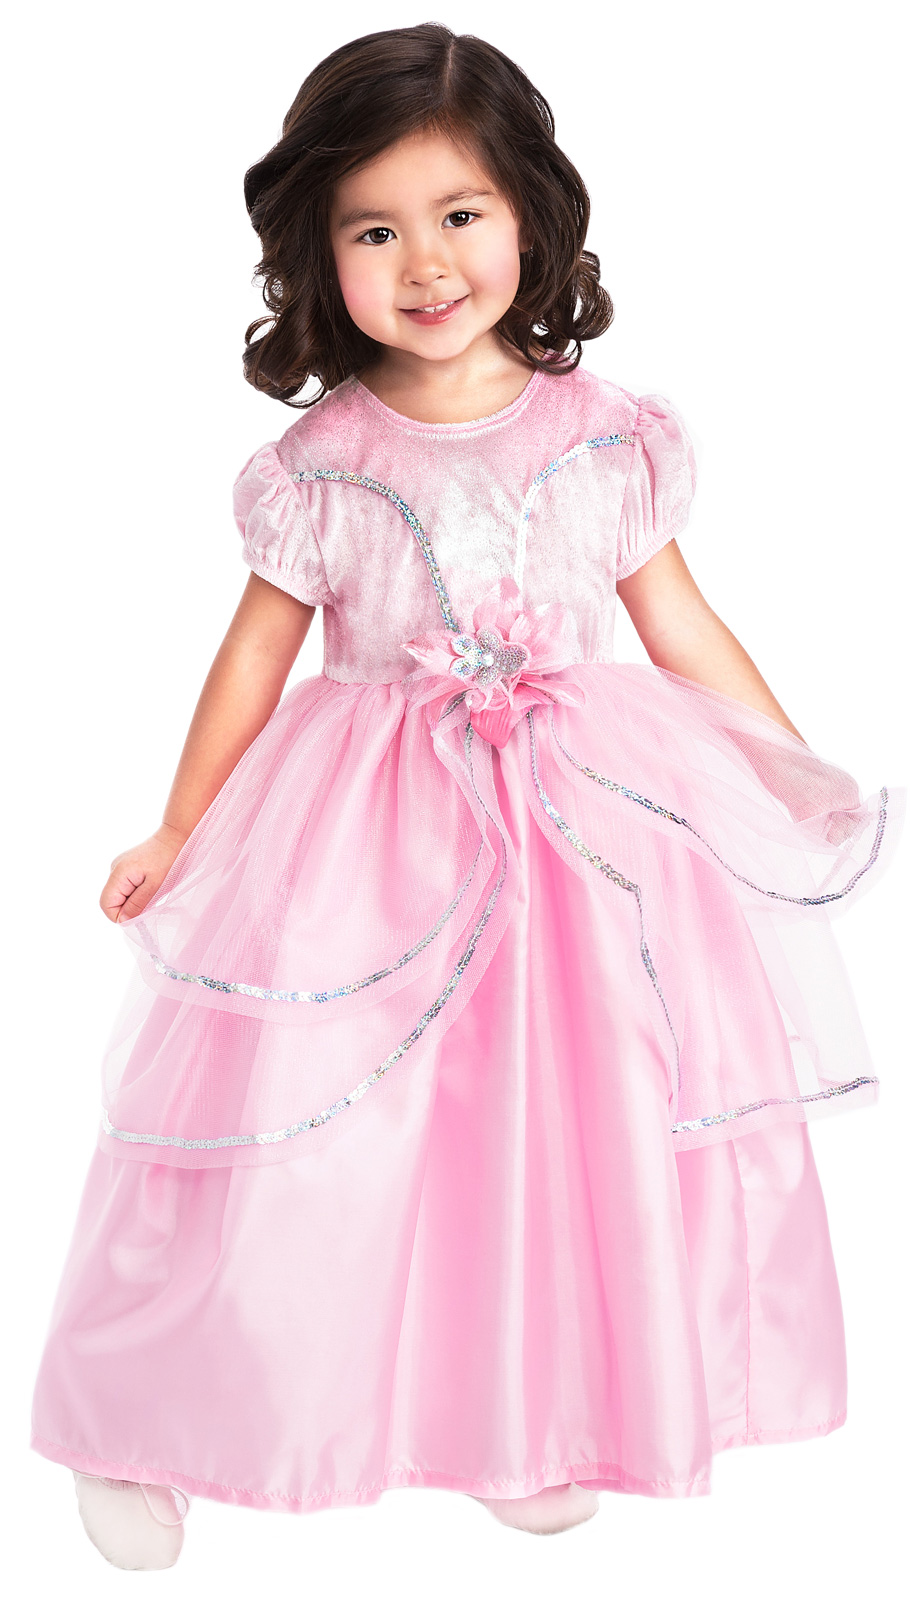 Dress Princess up clothes forecast to wear for summer in 2019